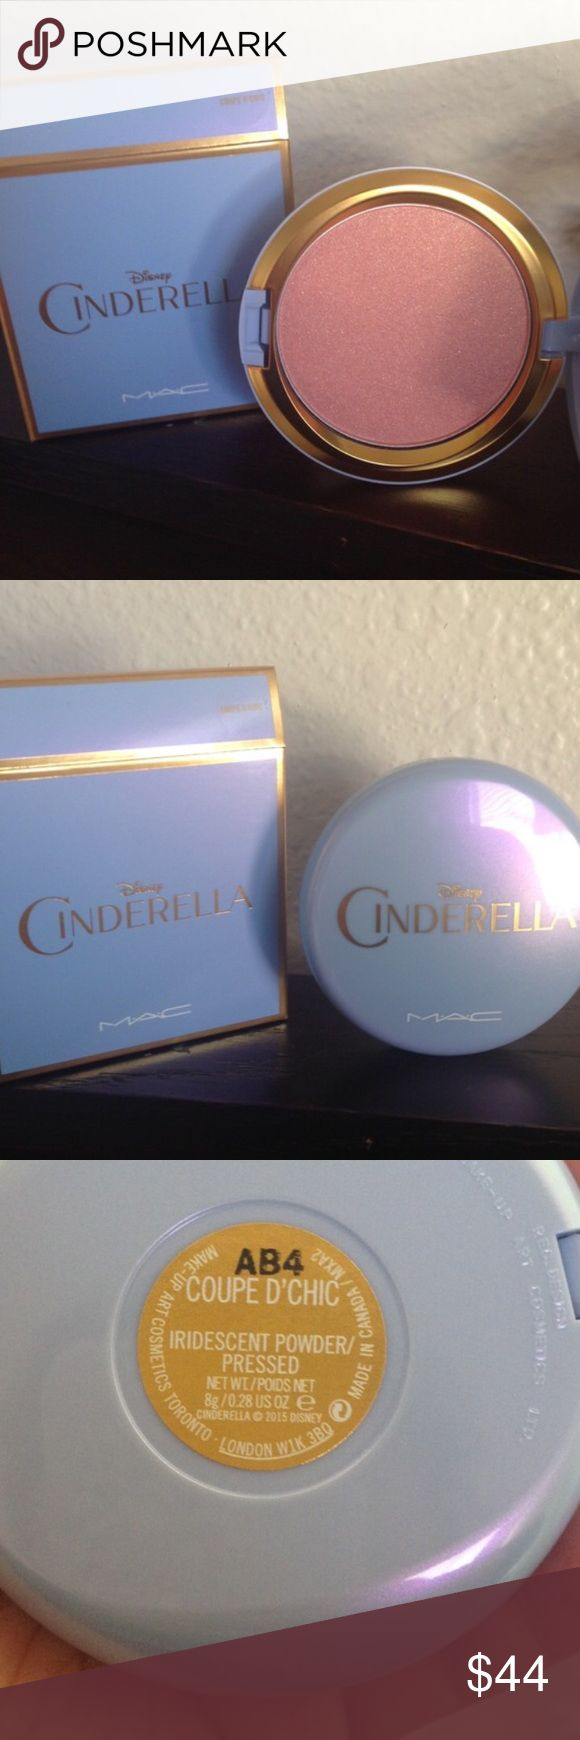 MAC Cinderella Highlighter Mac cosmetics cinderella limited edition collection coupe d'chic iridescent pink/gold highlighter/blush topper, new, 100% AUTHENTIC purchased from mac online MAC Cosmetics Makeup